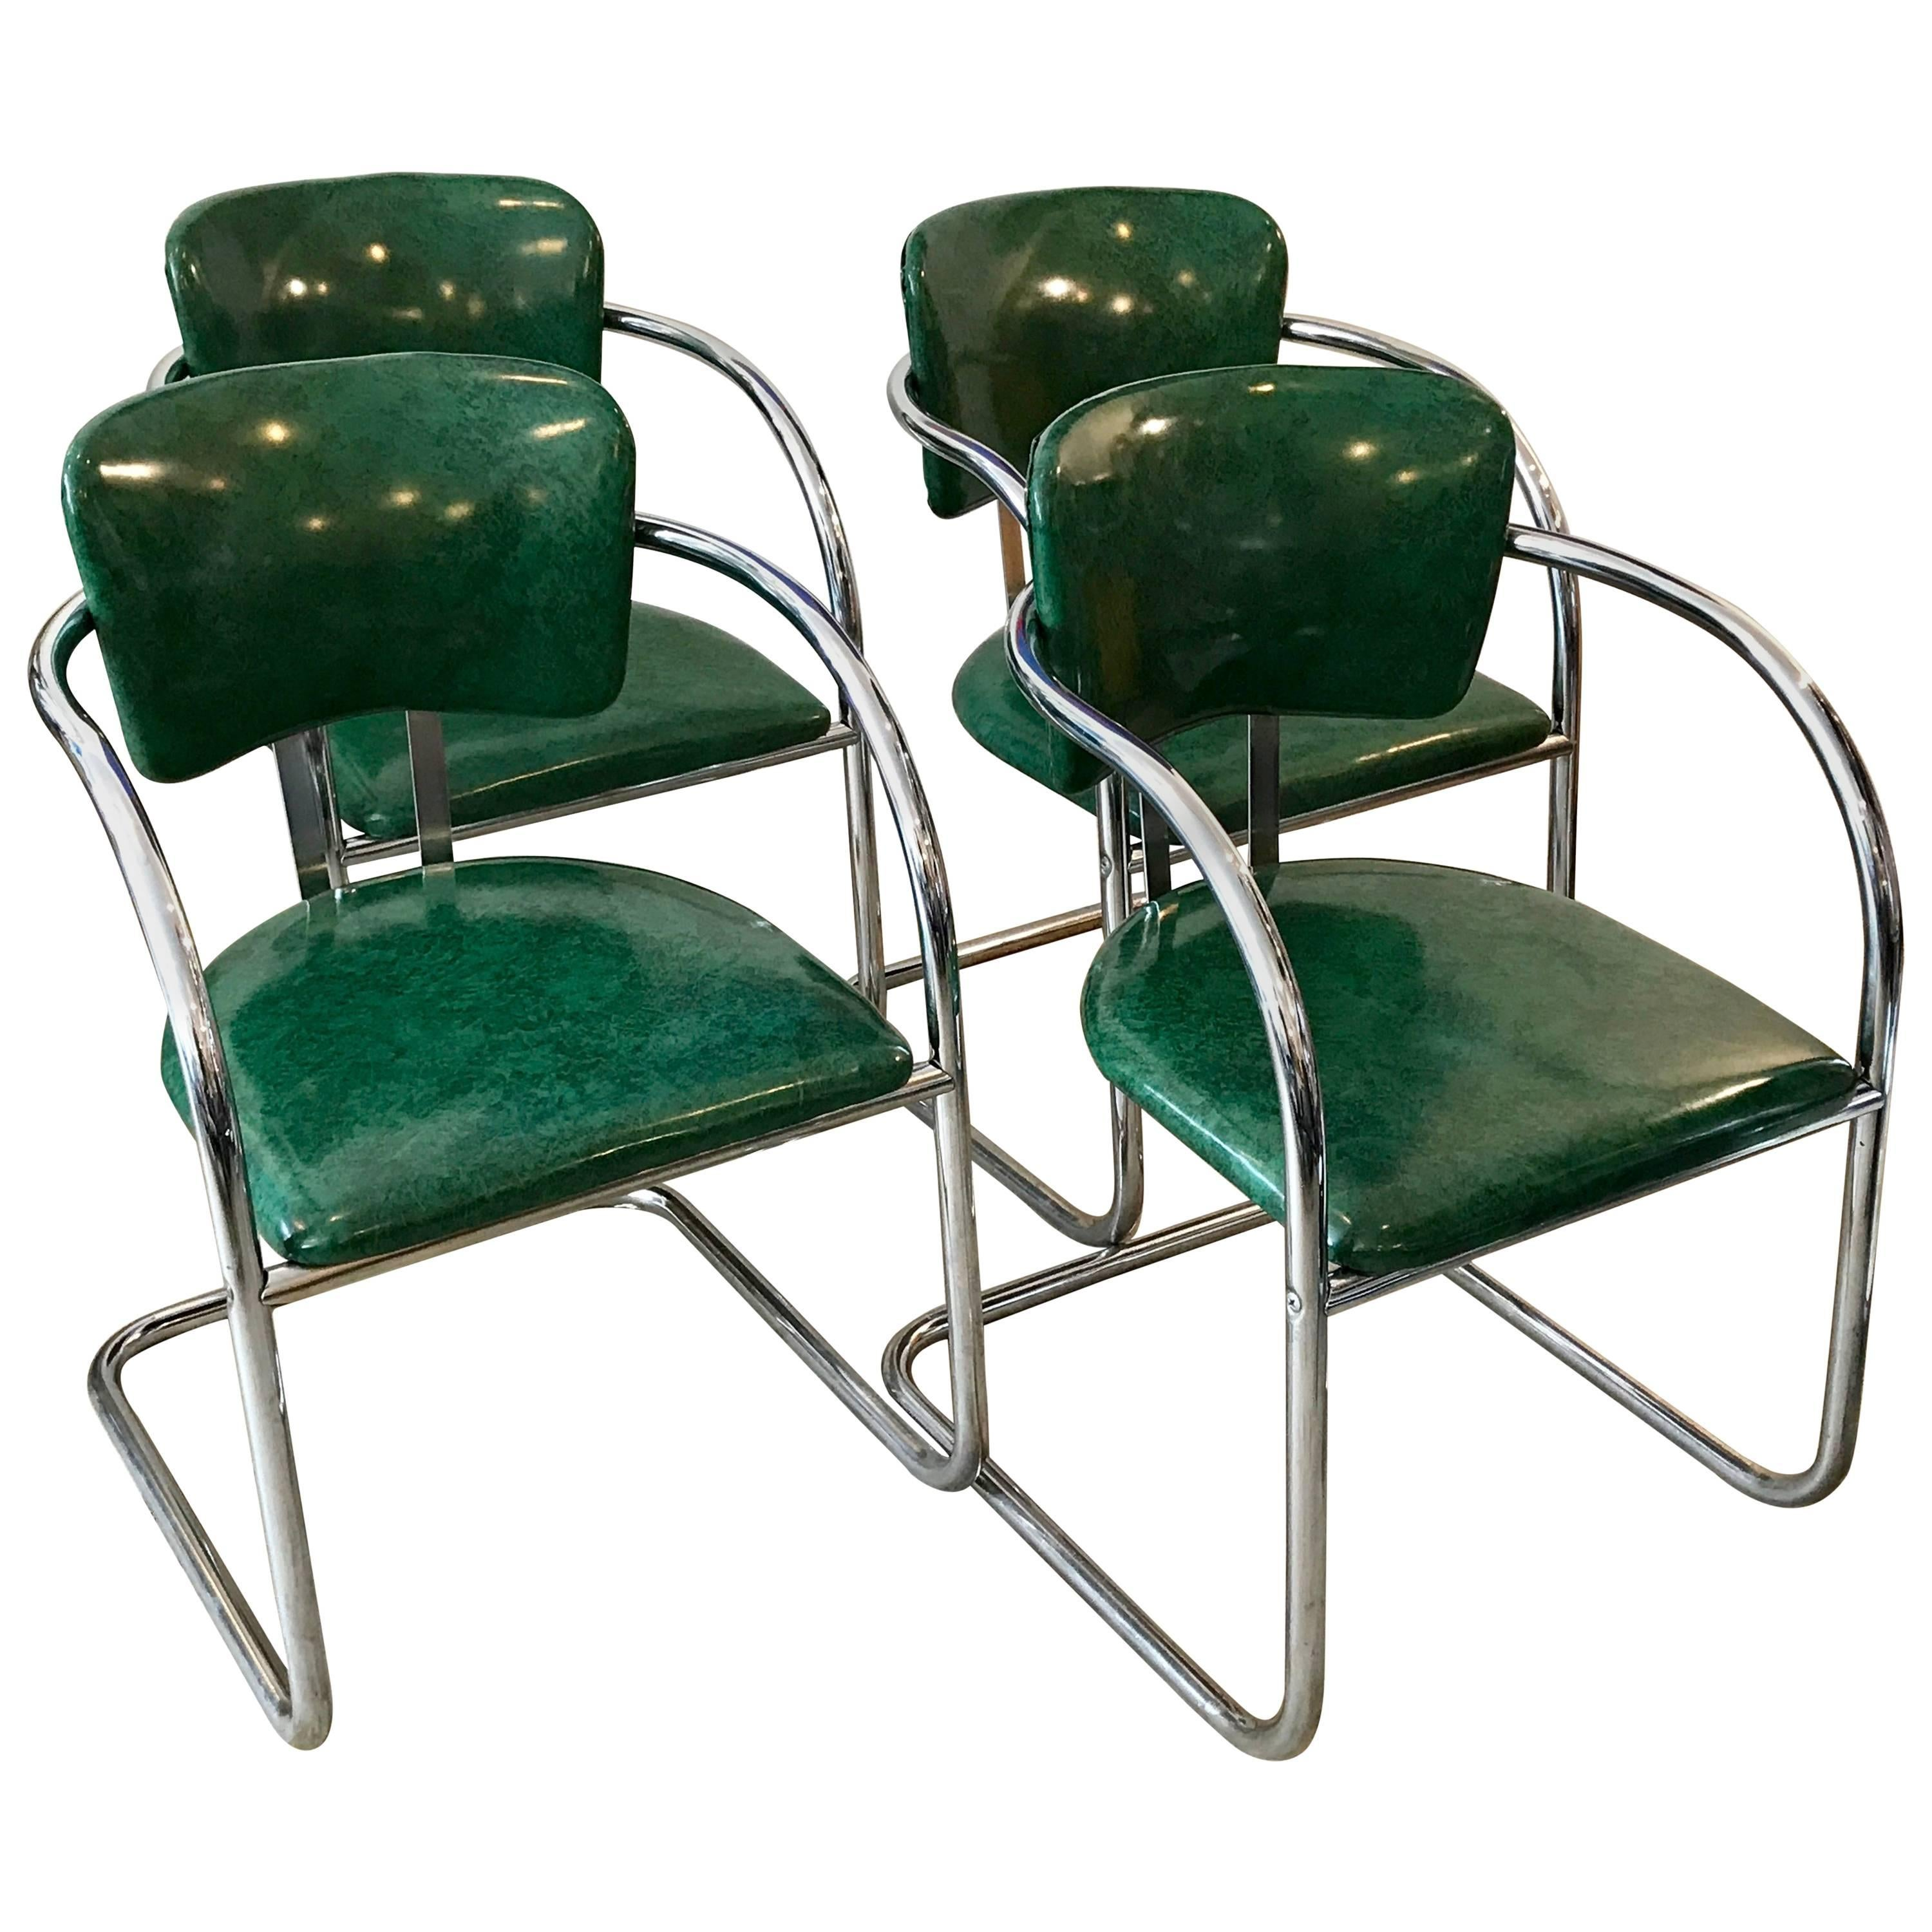 Four Chrome Streamline Modern Dining Chairs In The Style Of KEM Weber, 1930s